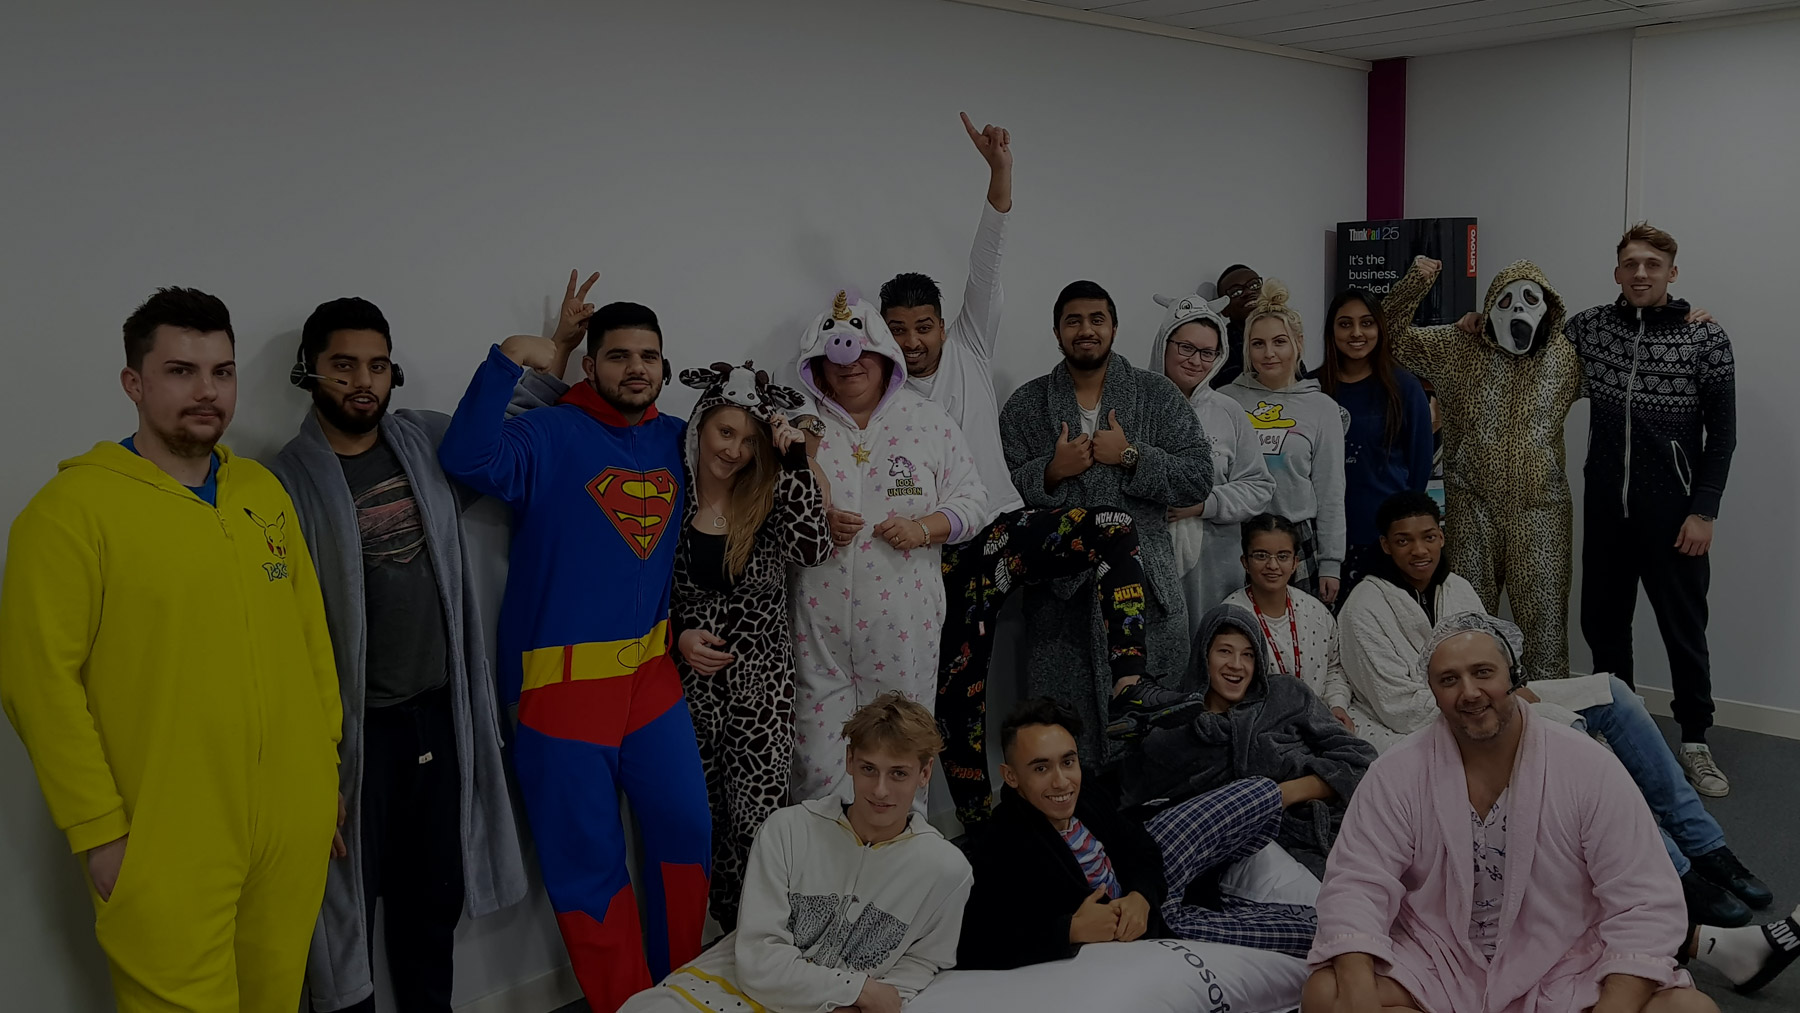 CCS Media raise over £2000 for Children in Need